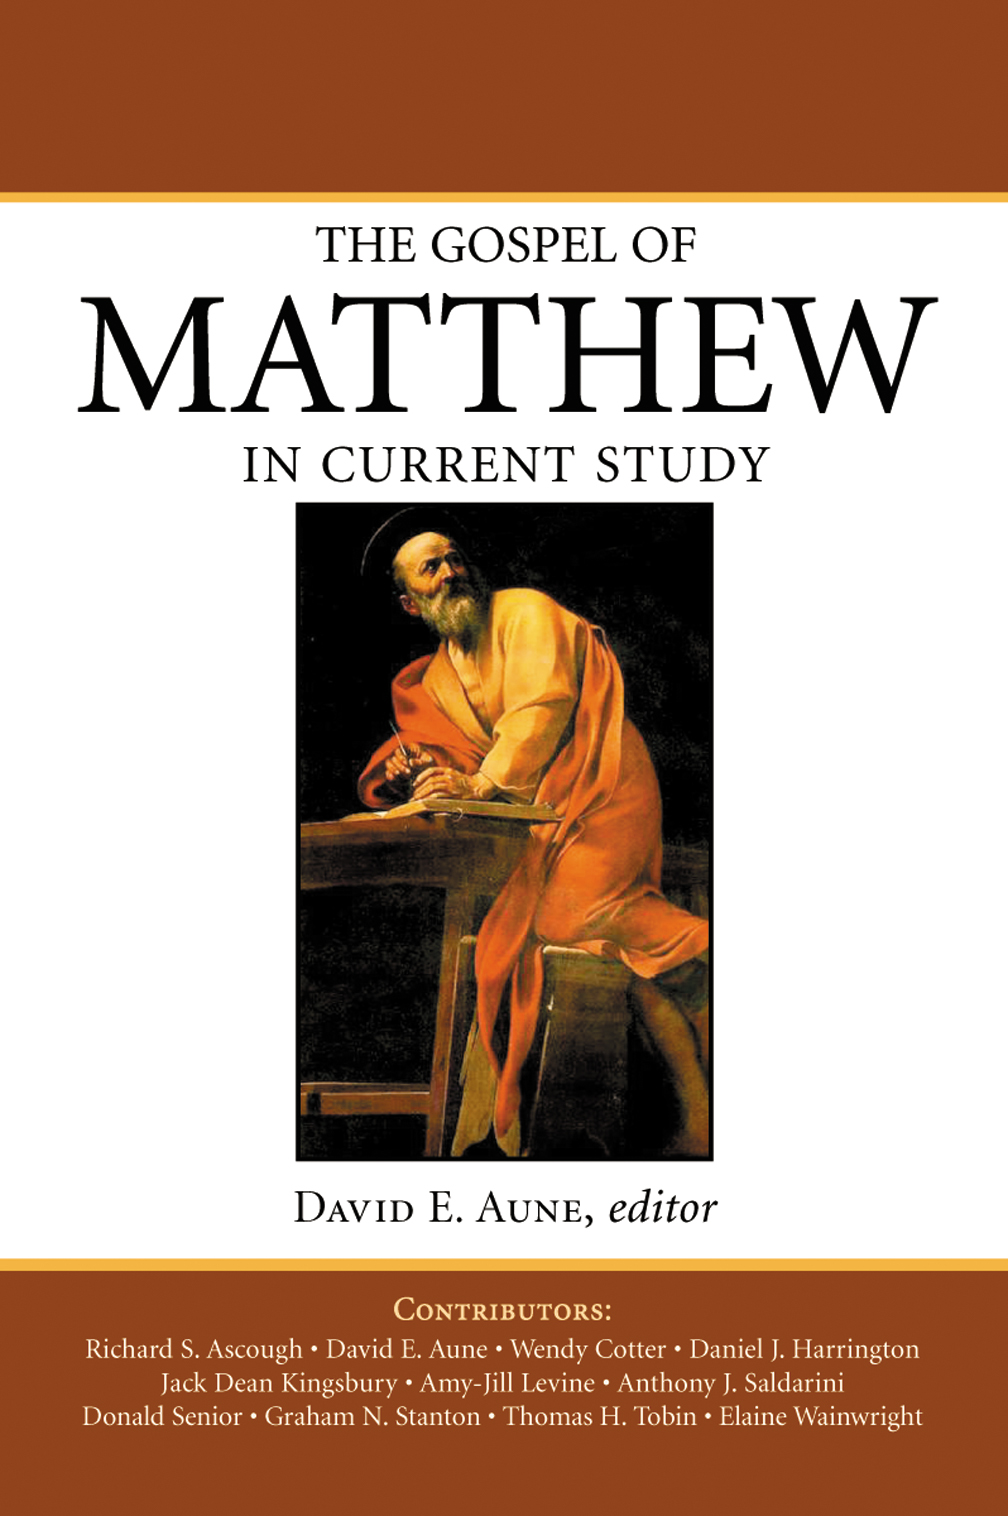 the gospel of matthew in depth analysis religion essay Essays religion conclusion religion conclusion 7 july 2016 no matter whom we are and belongs which religion but at end of the day we all standup on a single platform of one god (the gospel of matthew, page no: 82 - 20- 178.